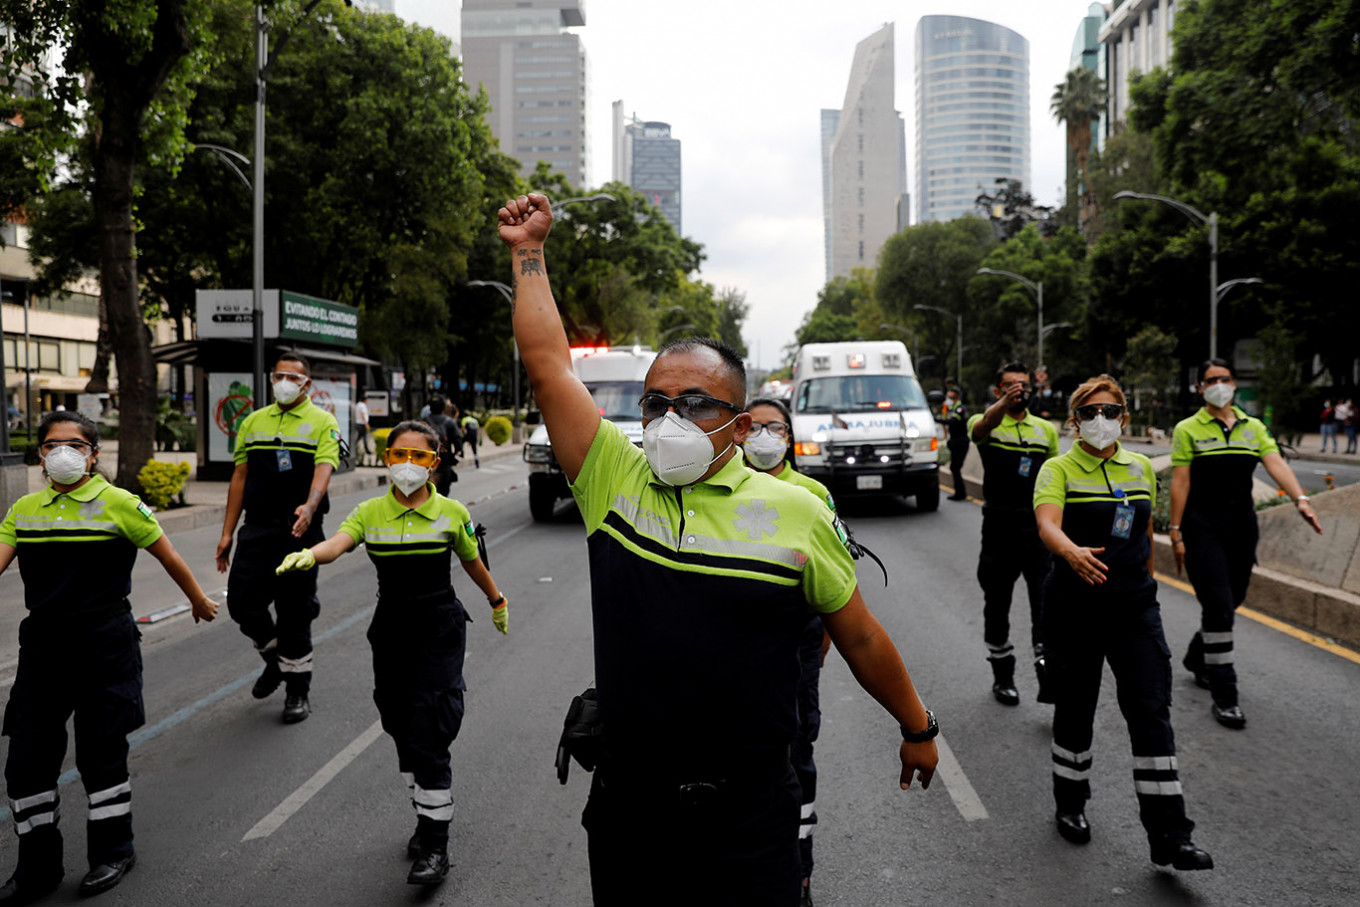 Mexico tops 10,000 COVID-19 deaths: Government